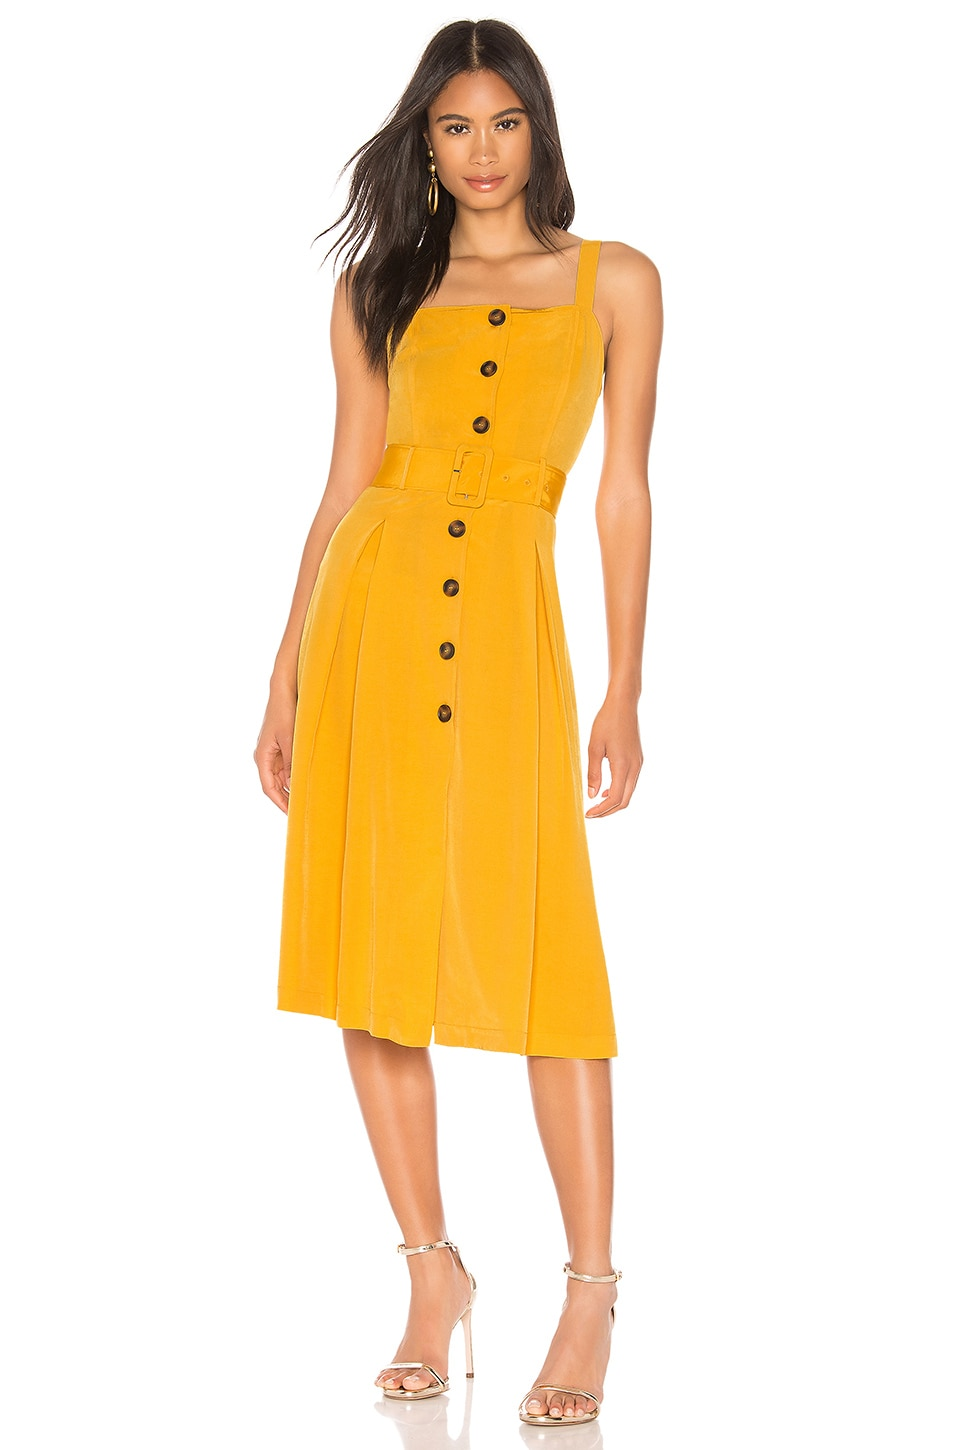 J.O.A. Buttoned Down Belted Dress in Marigold